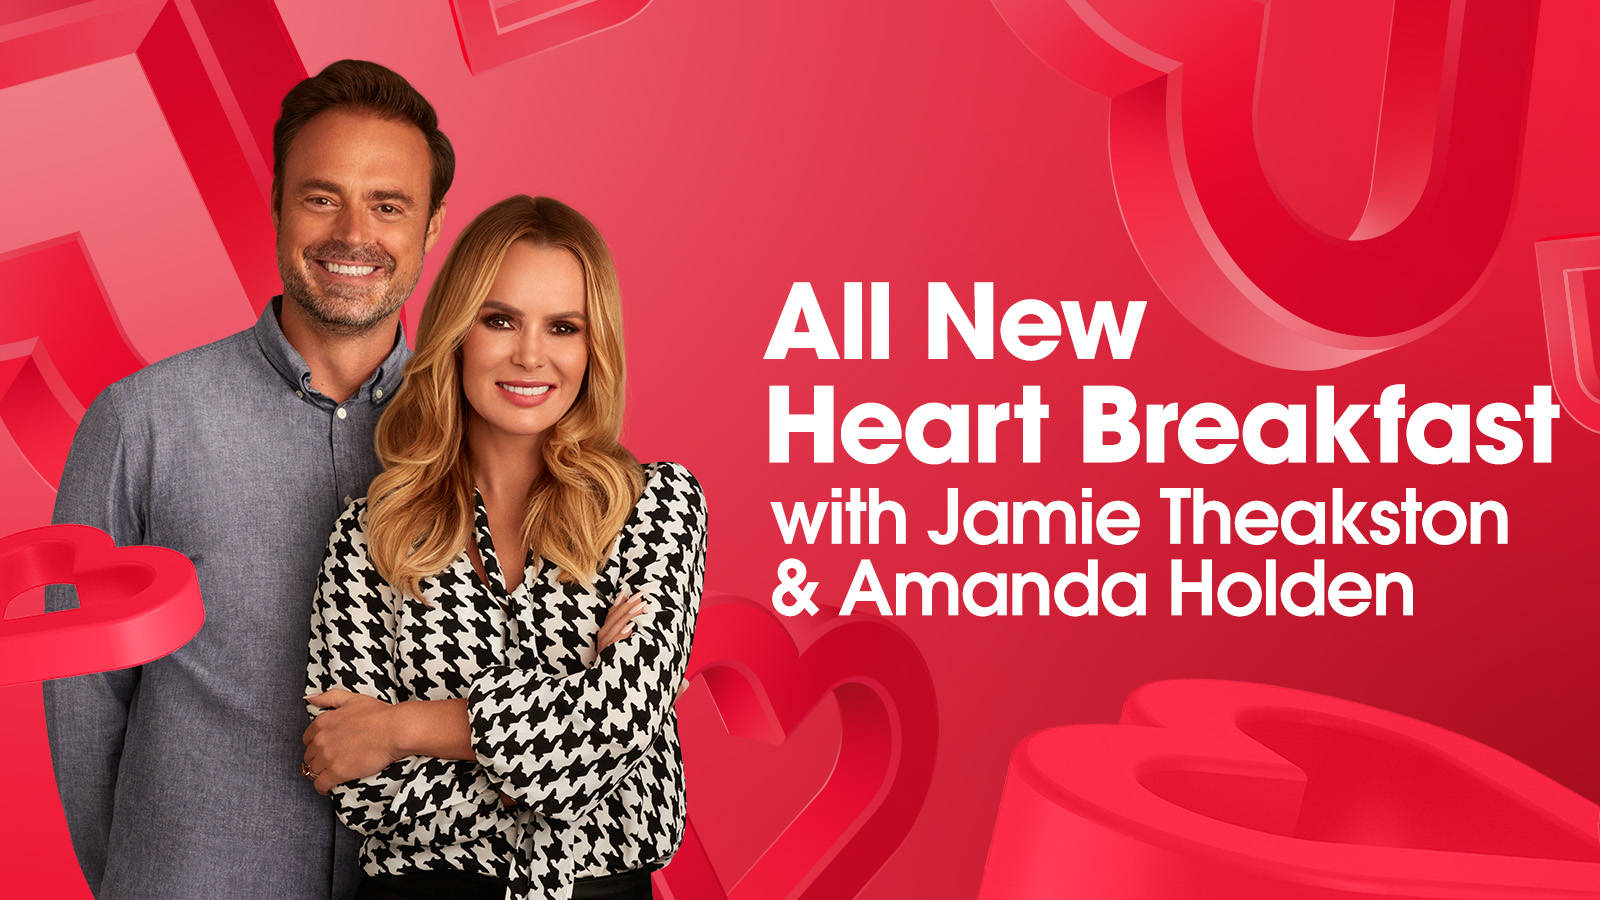 Join Jamie Theakston and Amanda Holden for the All New Heart